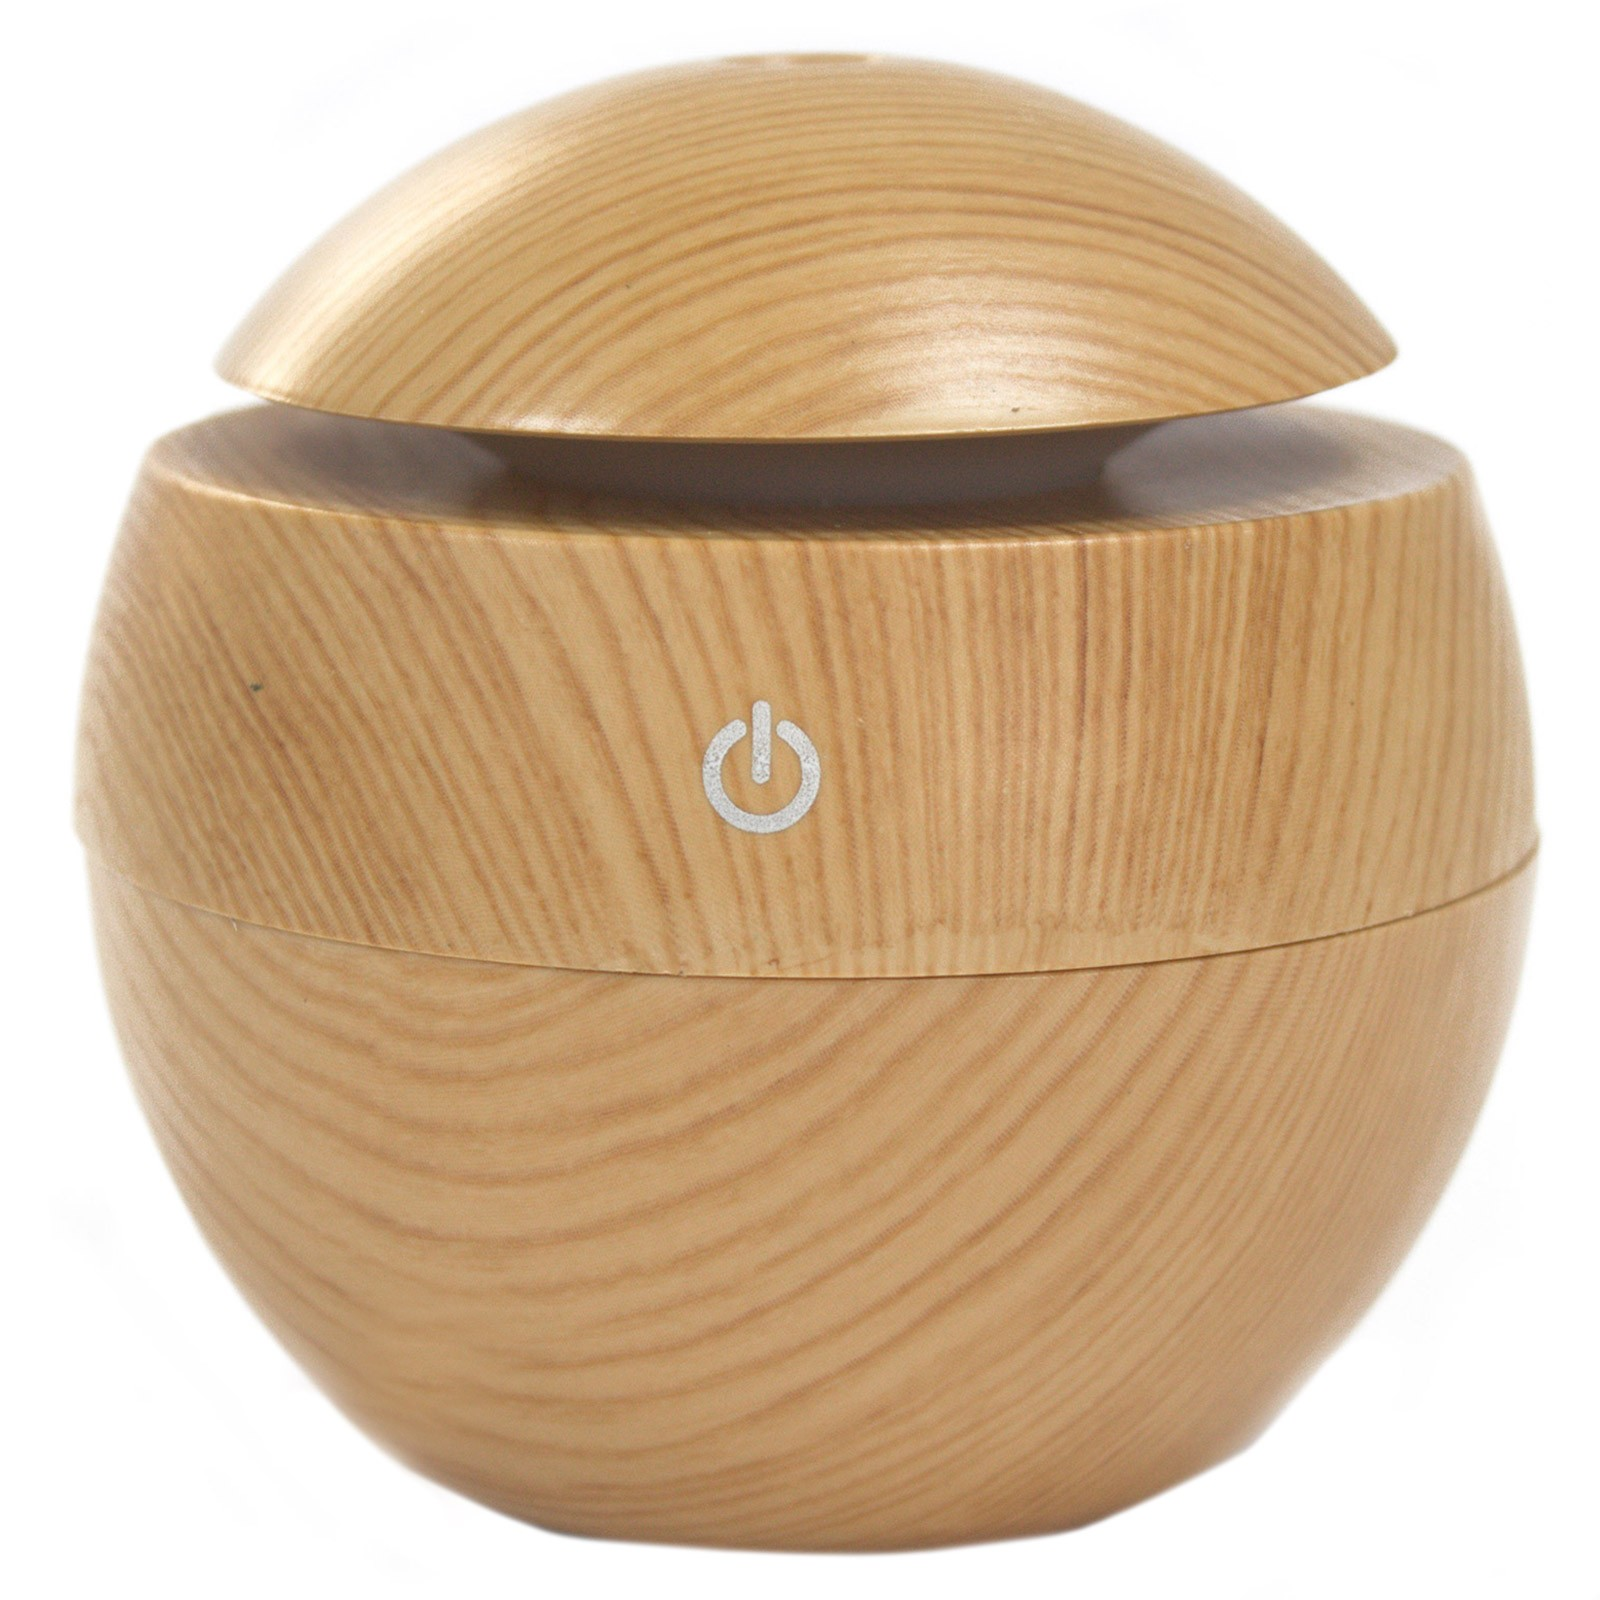 Ultrasonic aroma humidifier in Pinewood